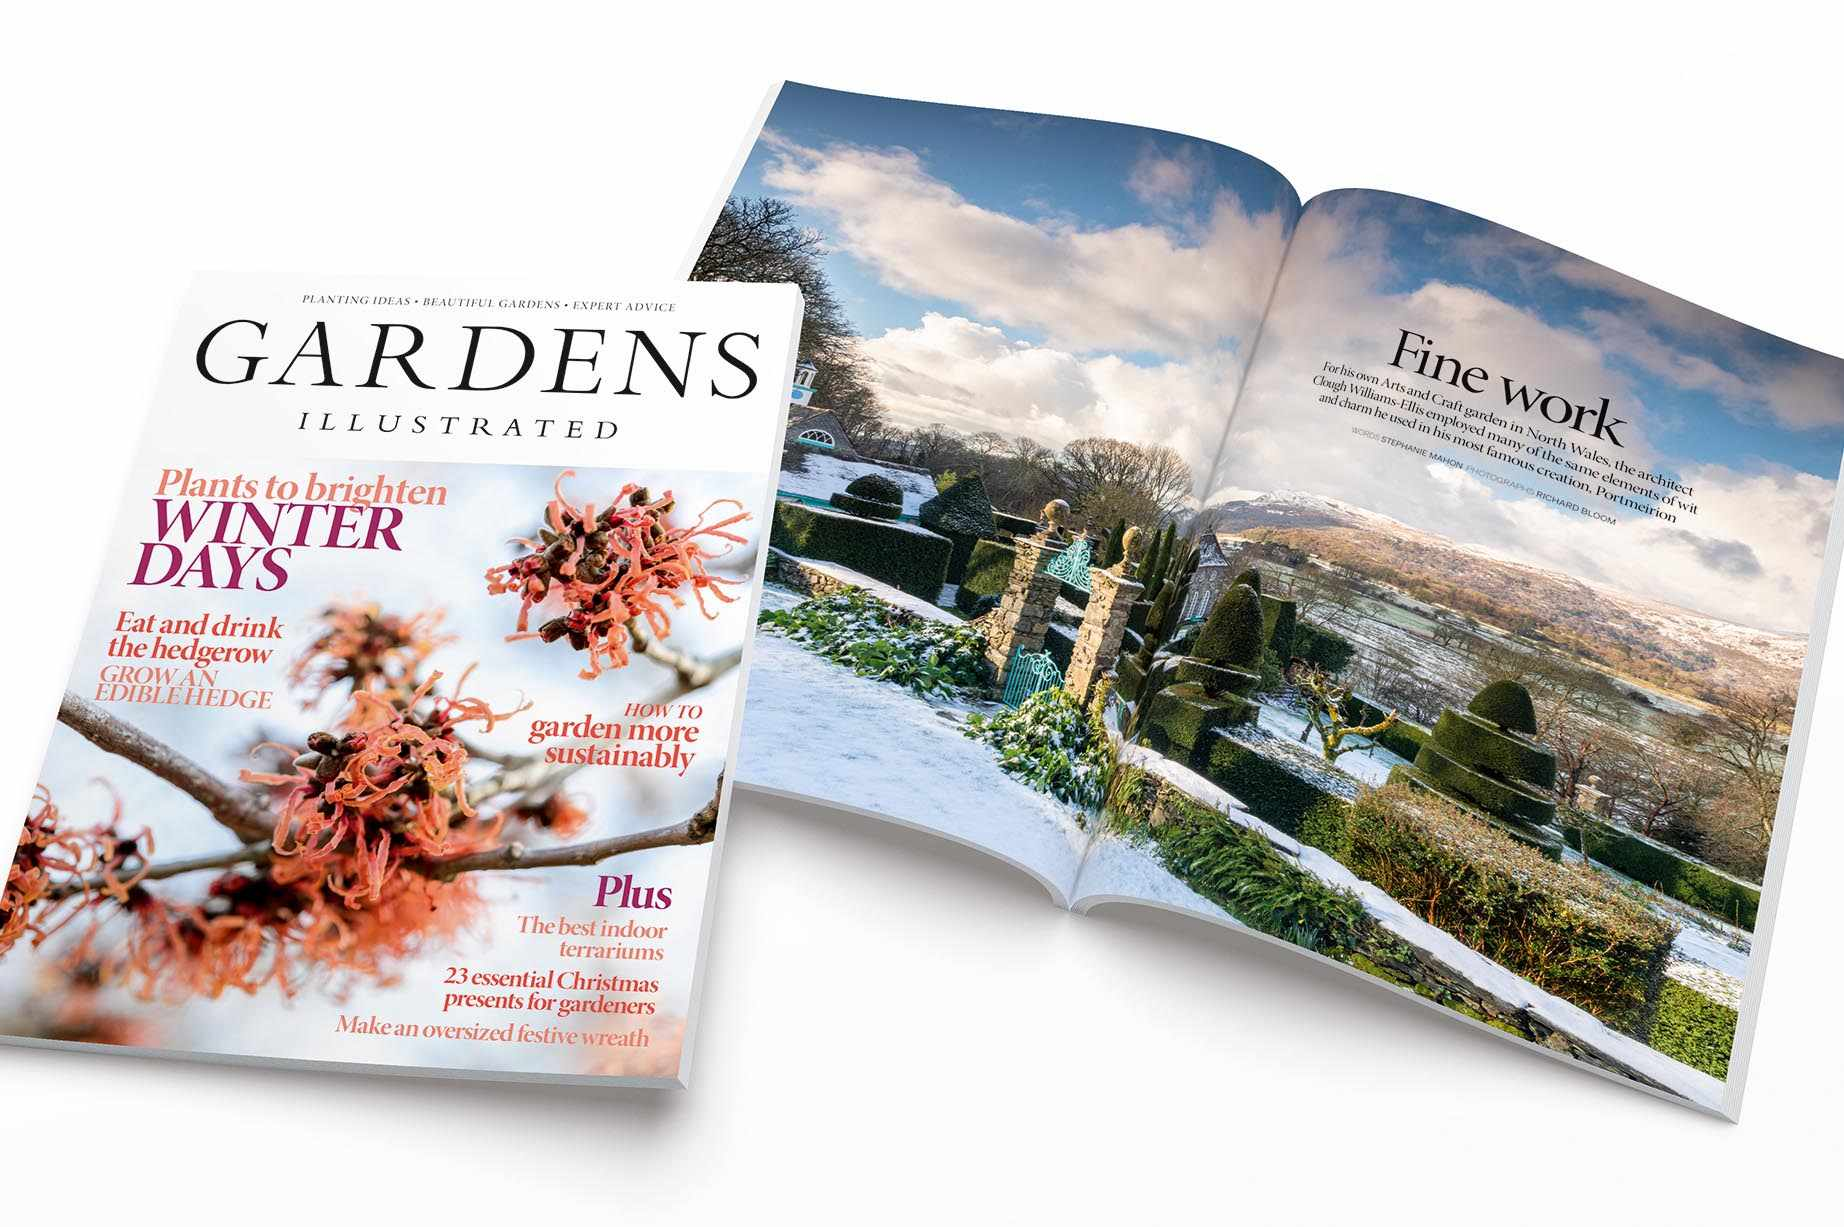 Gardens Illustrated's December issue